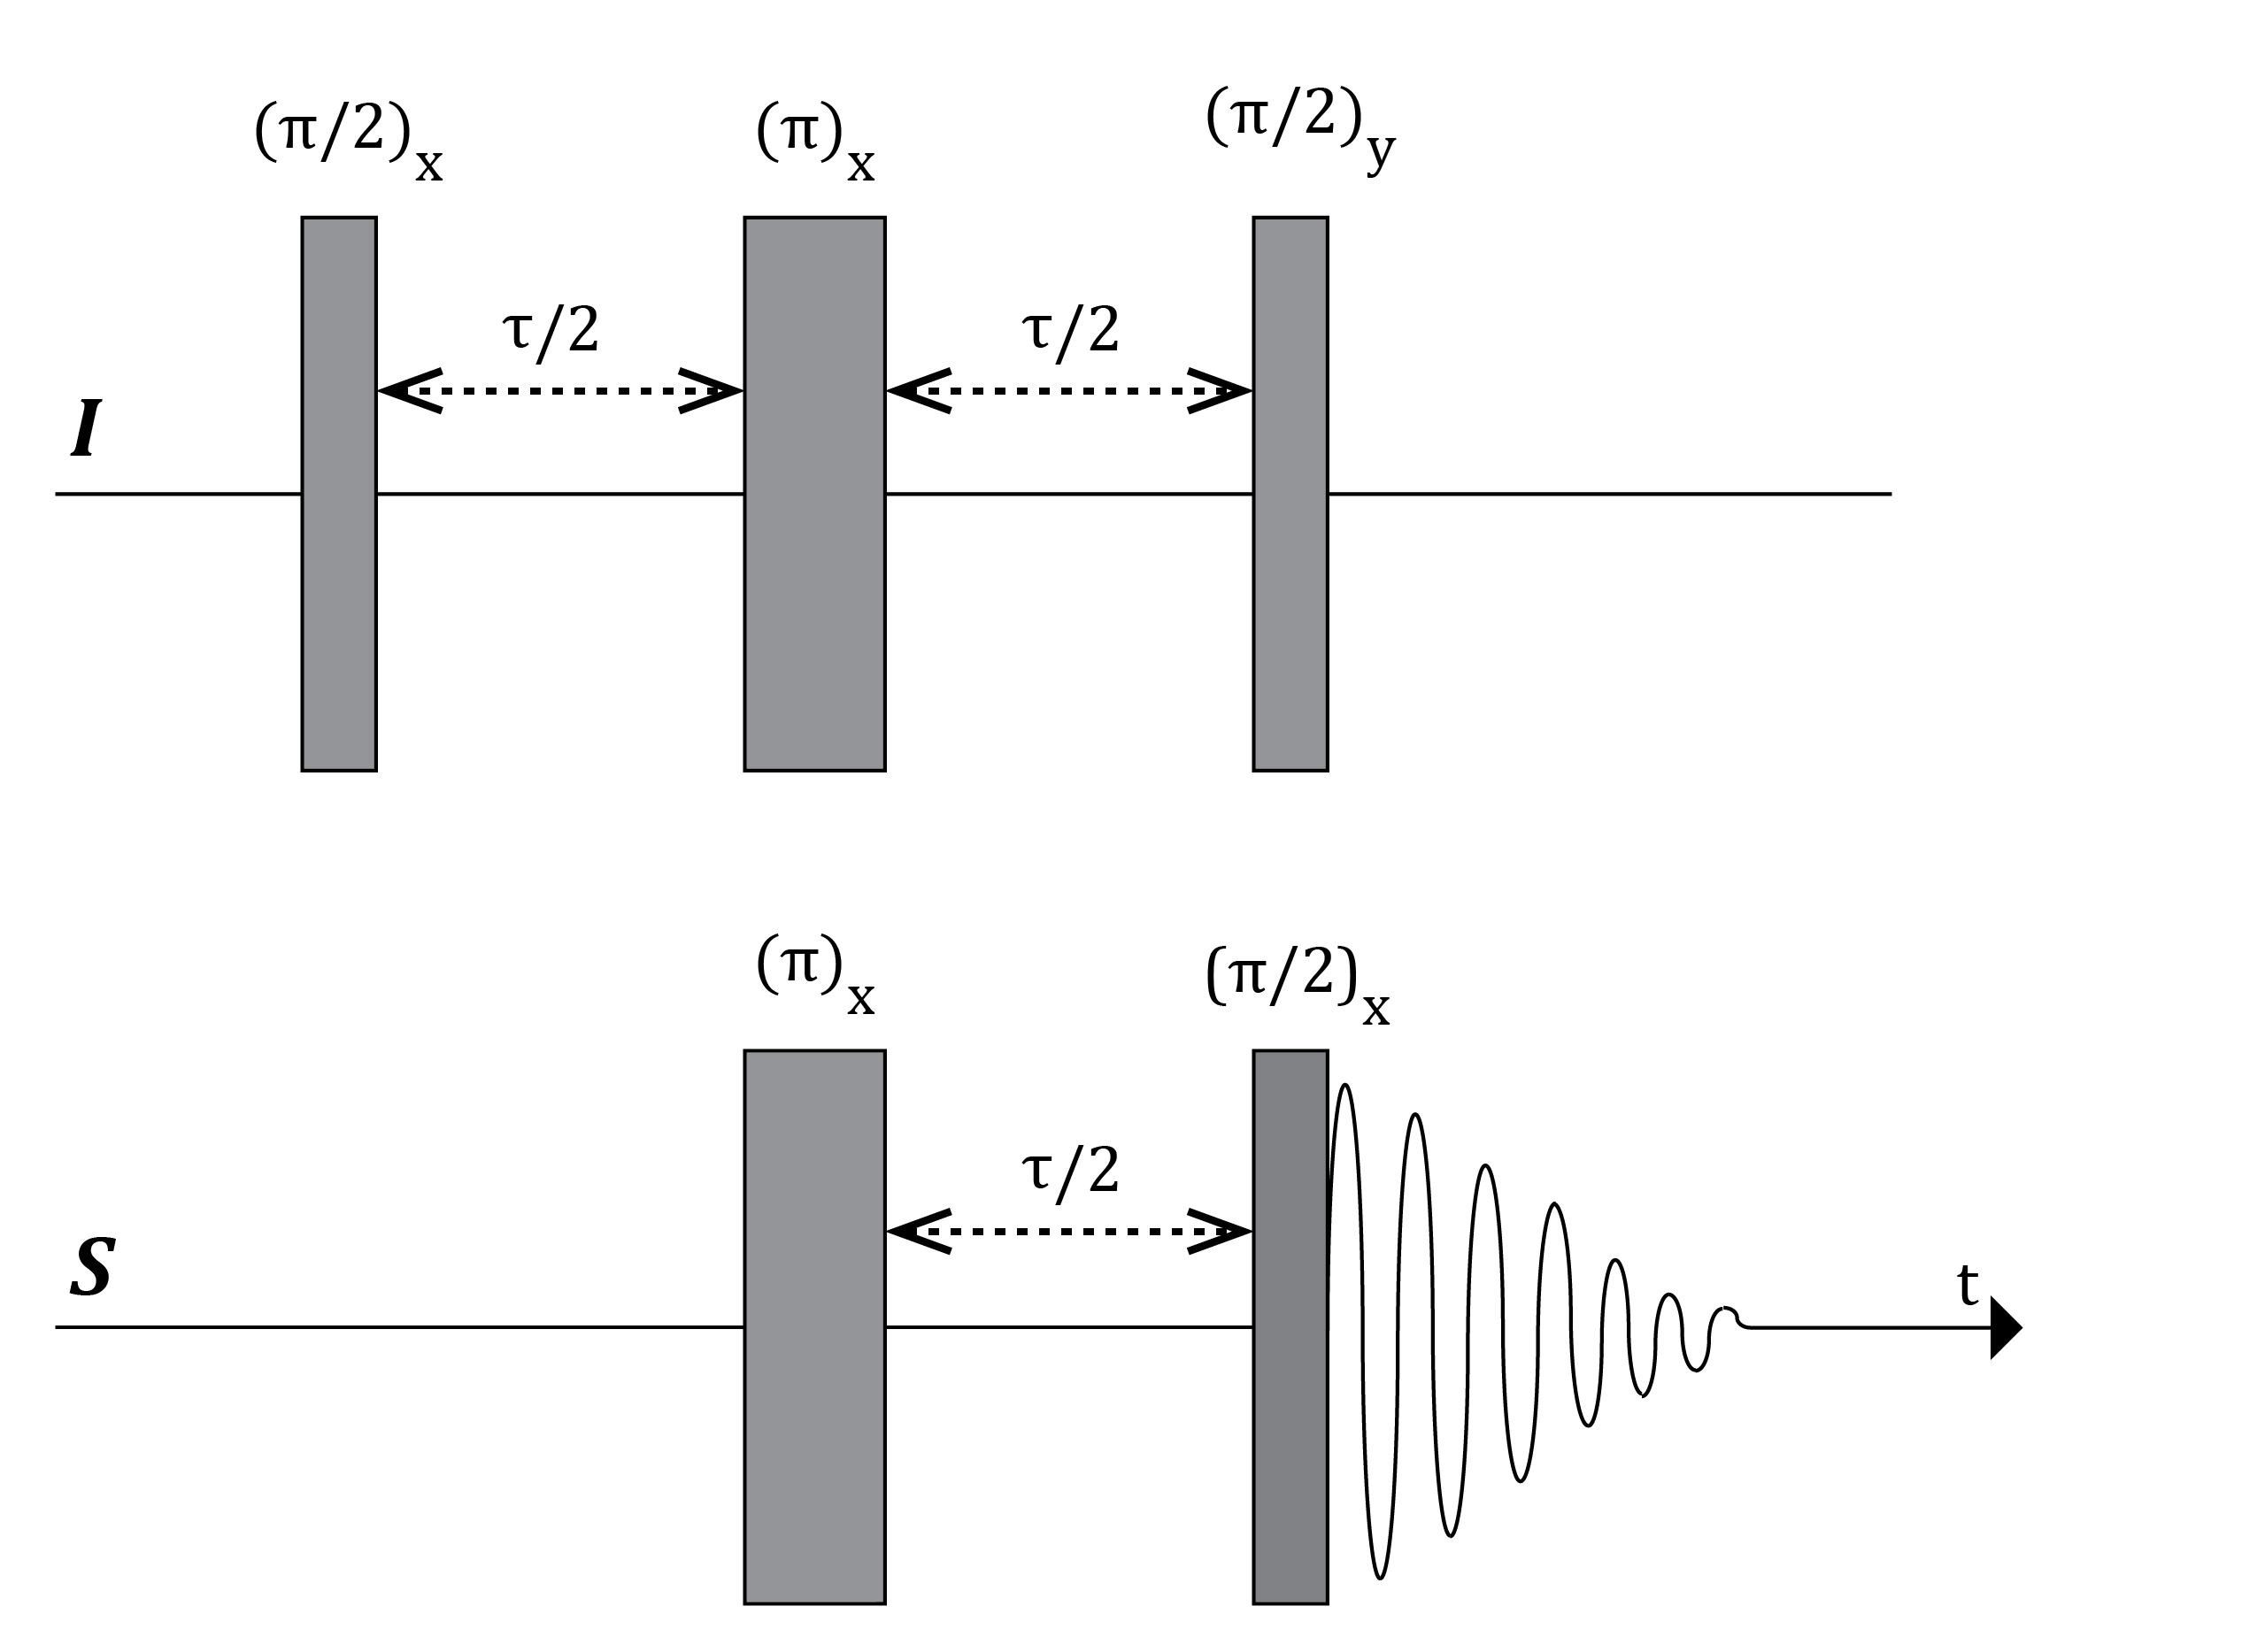 File:inept Pulse Sequence.png - Inept, Transparent background PNG HD thumbnail